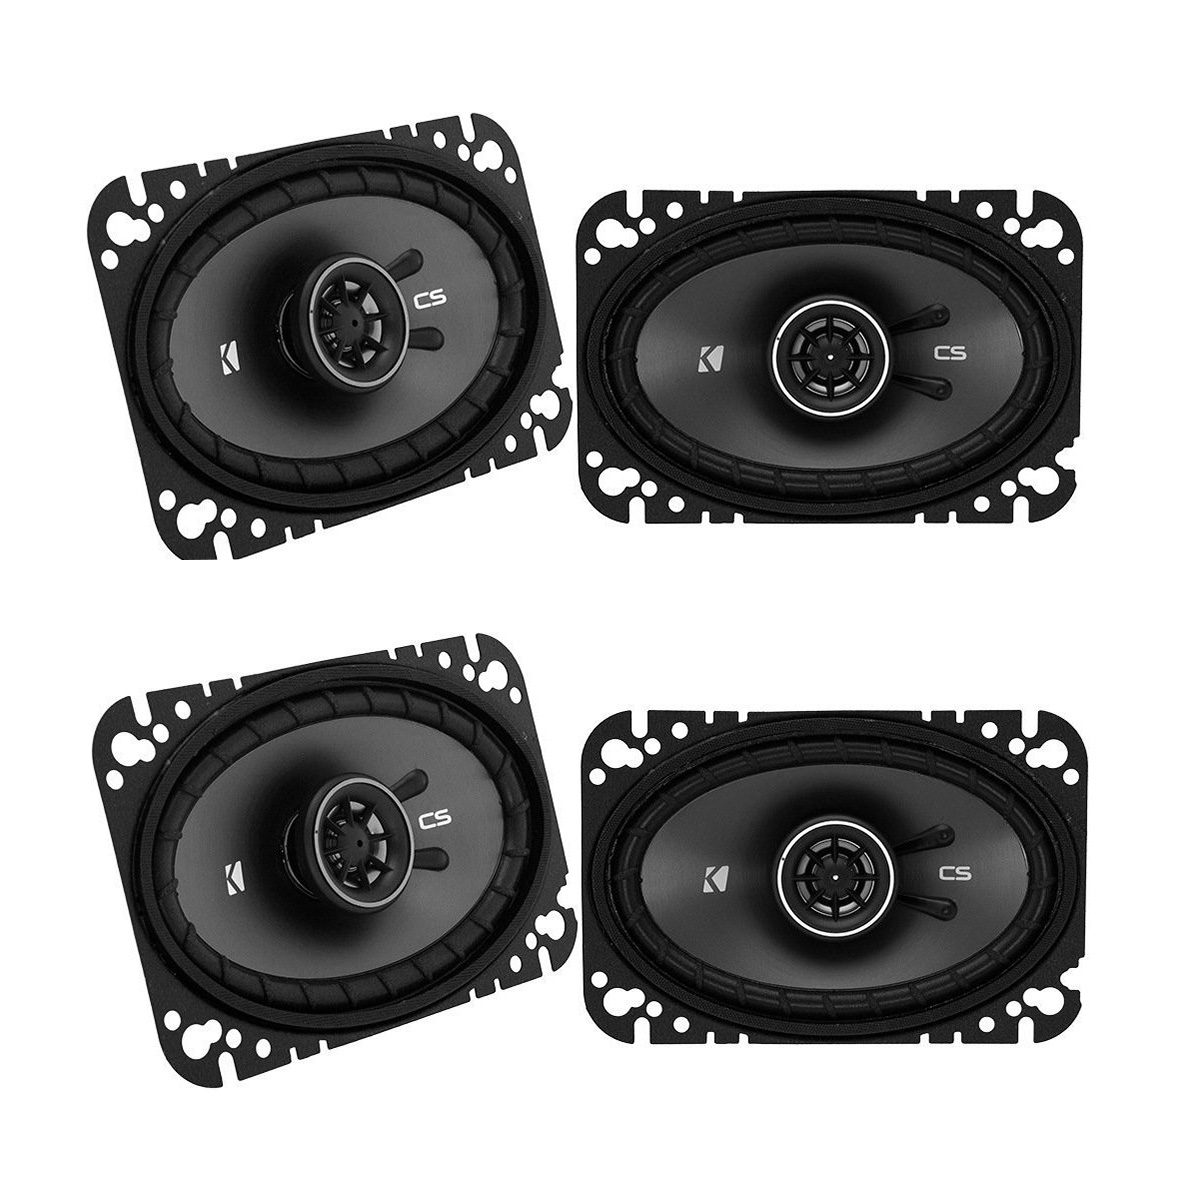 "Kicker CSC46 600W 4"" x 6"" 2-Way Coaxial Car Audio Speakers (2 Pair) 